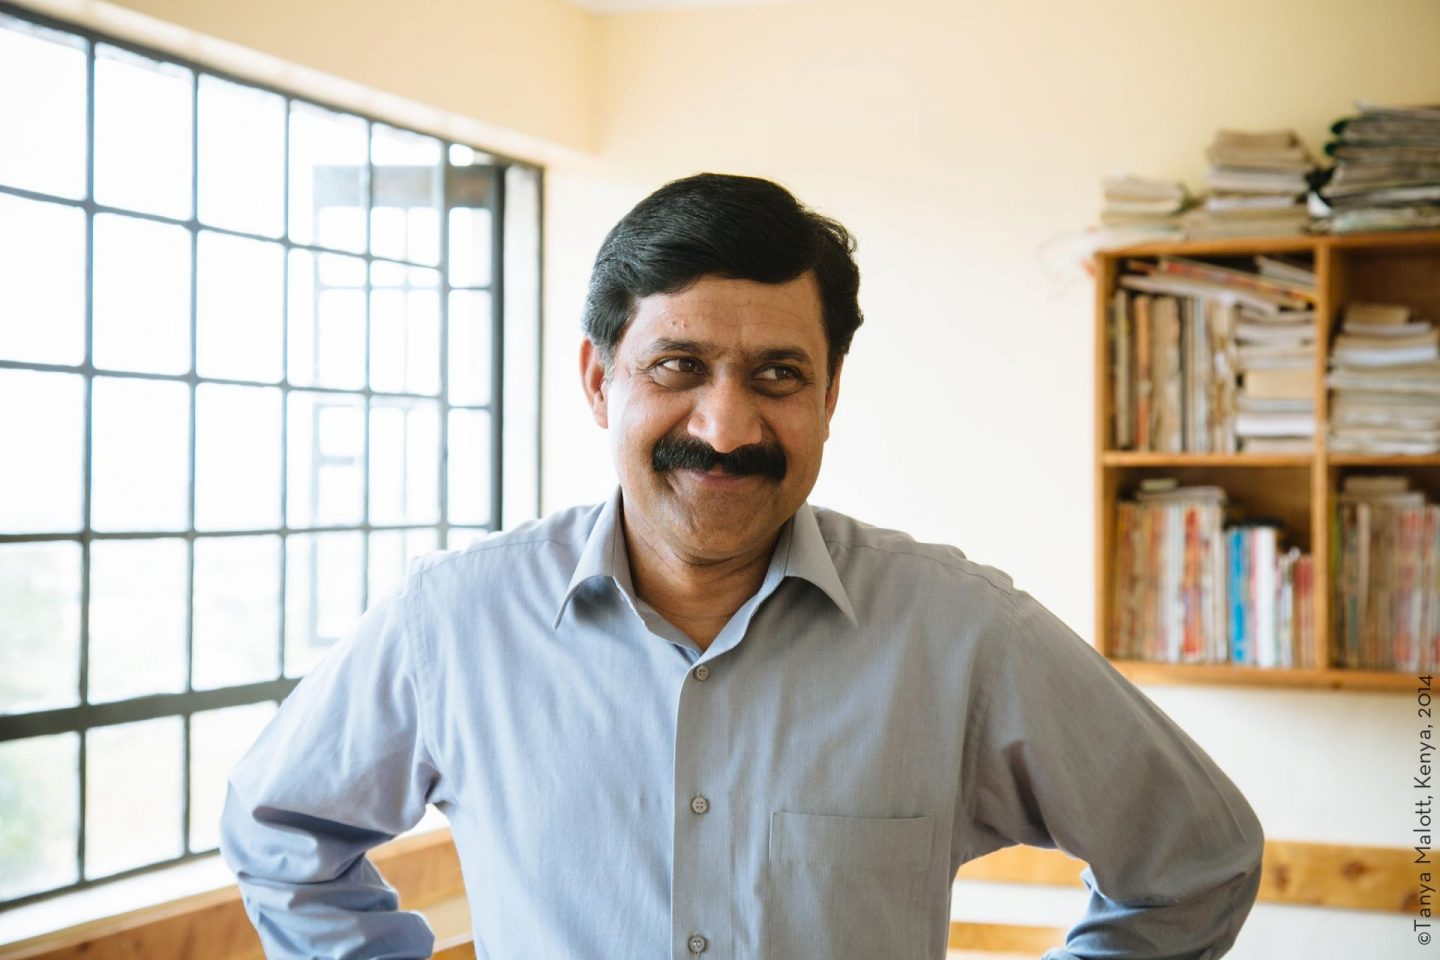 Ziauddin Yousafzai, Malala, education, girl's education, schooling, Dadbloguk, Dadbloguk Q&A, uk dad blog, dad blogger